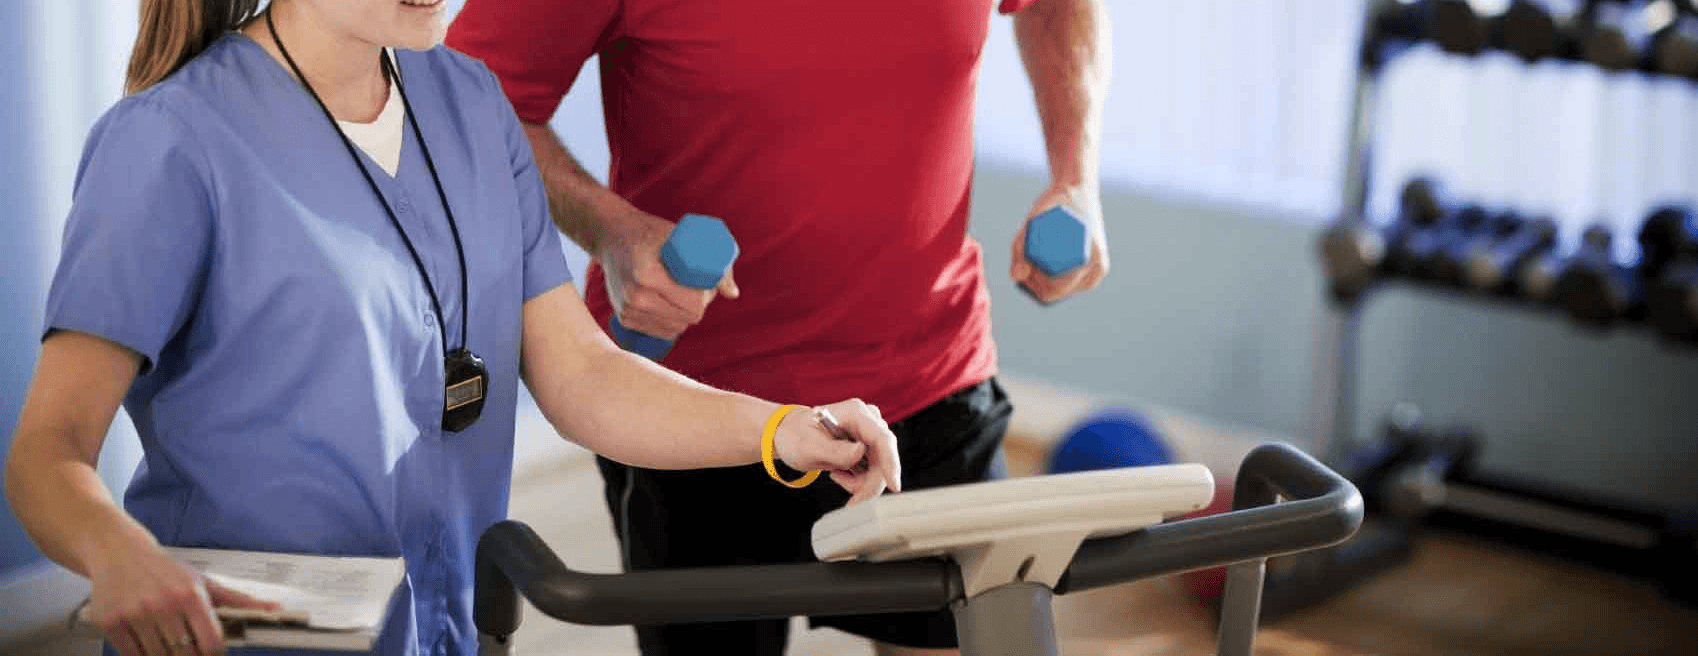 cardiac-rehab-services